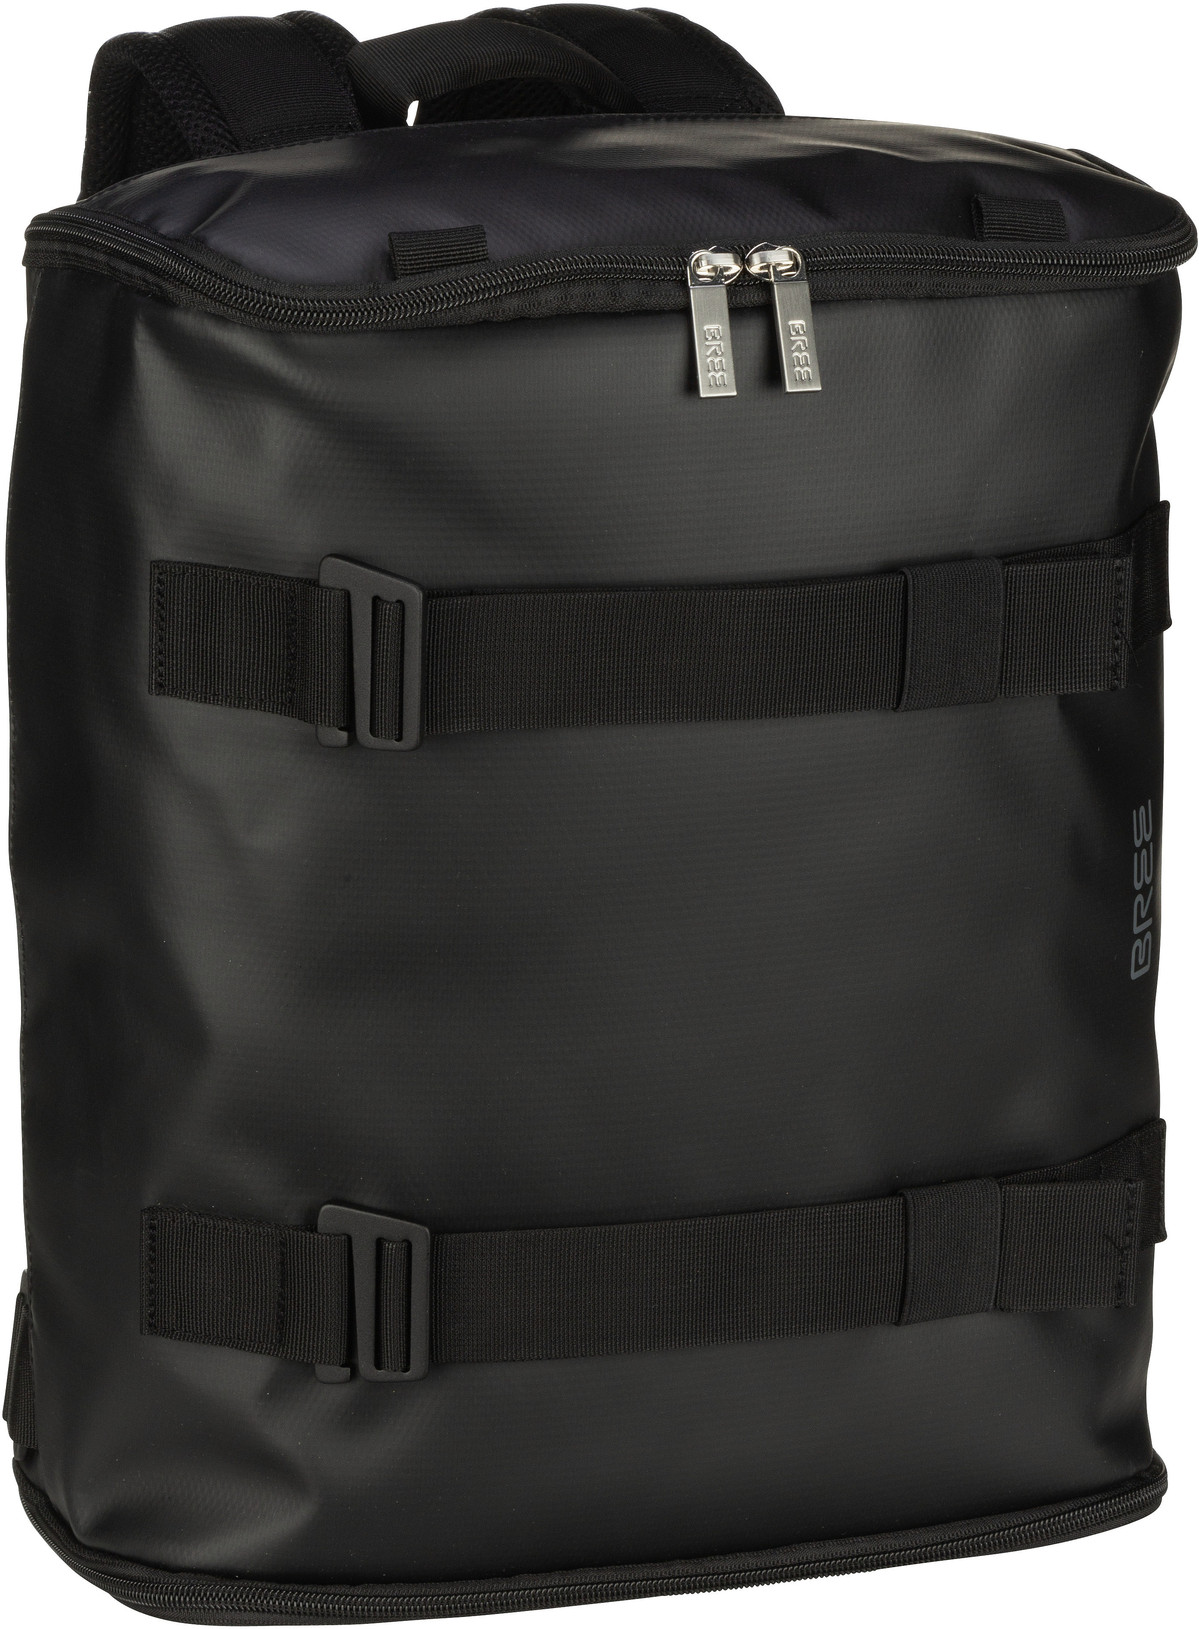 Laptoprucksack Punch 733 Black